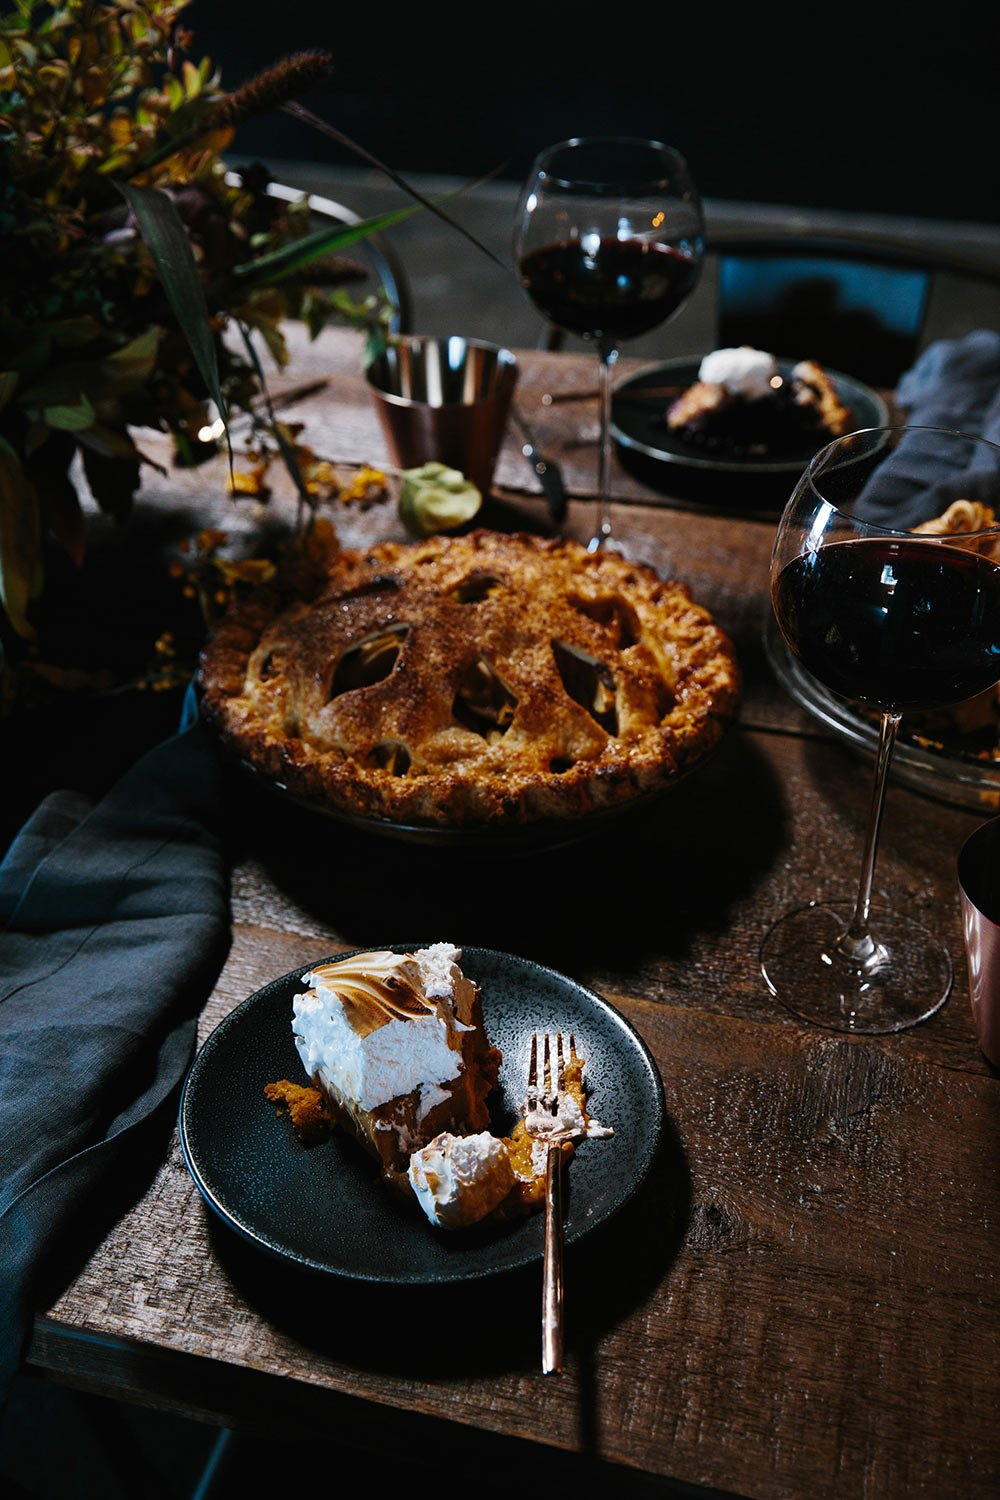 Slice of meringue pie on a black dinner plate next to a crispy holiday pie and a glass of red wine on a wood dining table